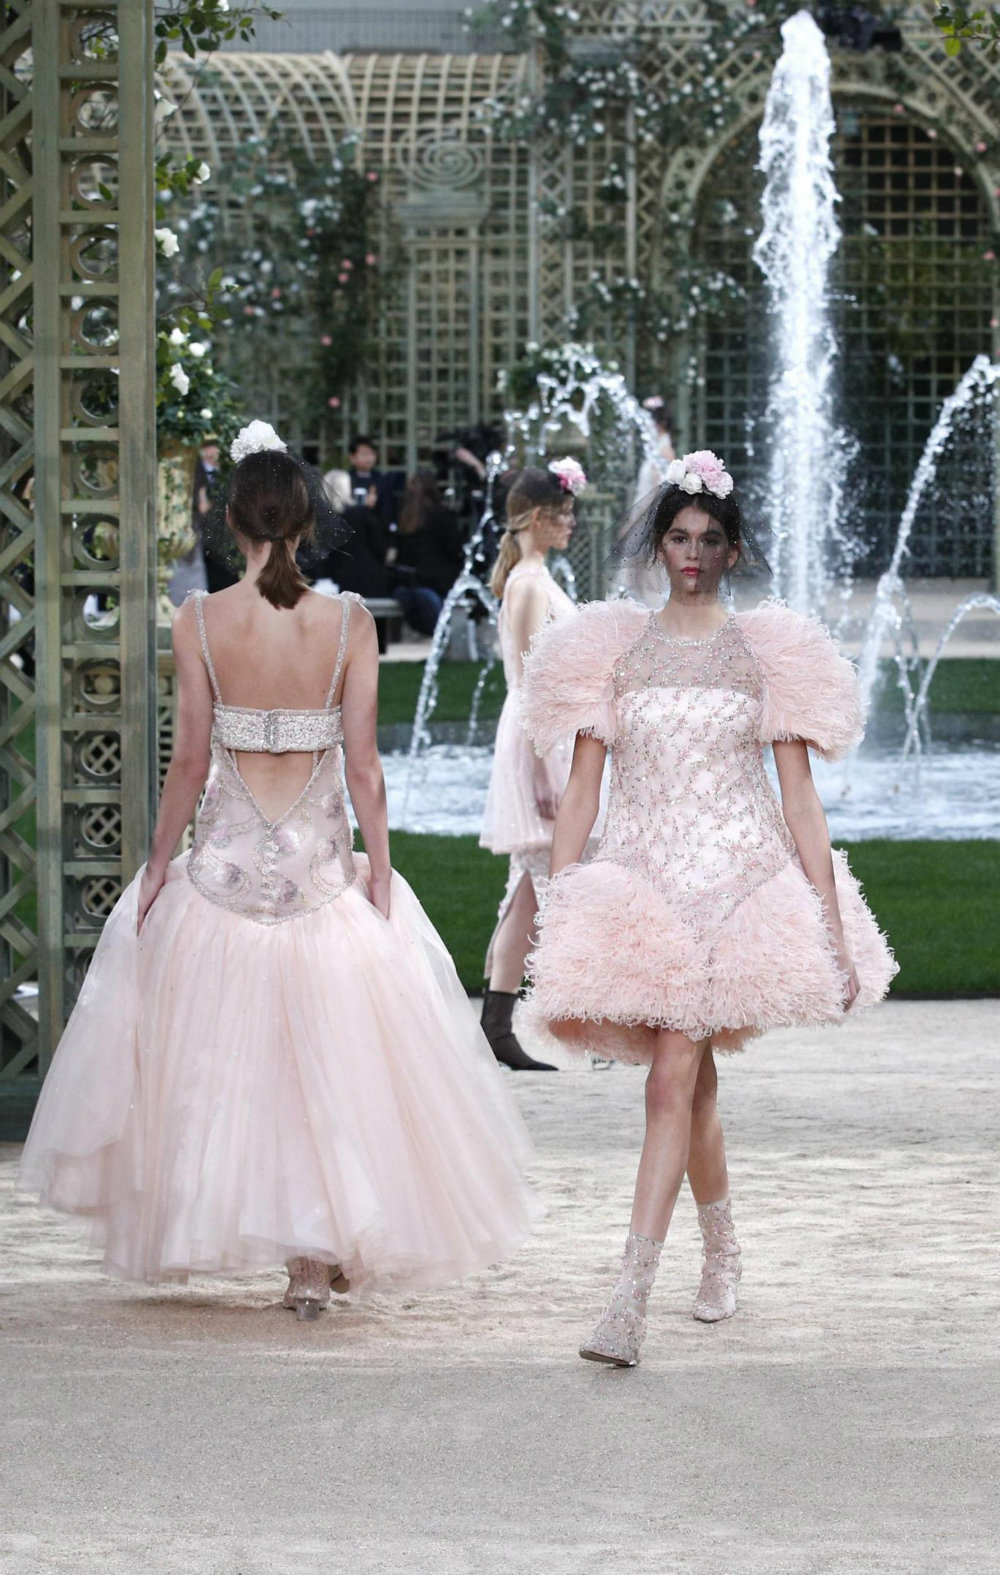 chanel Chanel Dazzles at Paris Couture Fashion Week 2018 Chanel Dazzles at Paris Couture Fashion Week 2018 05